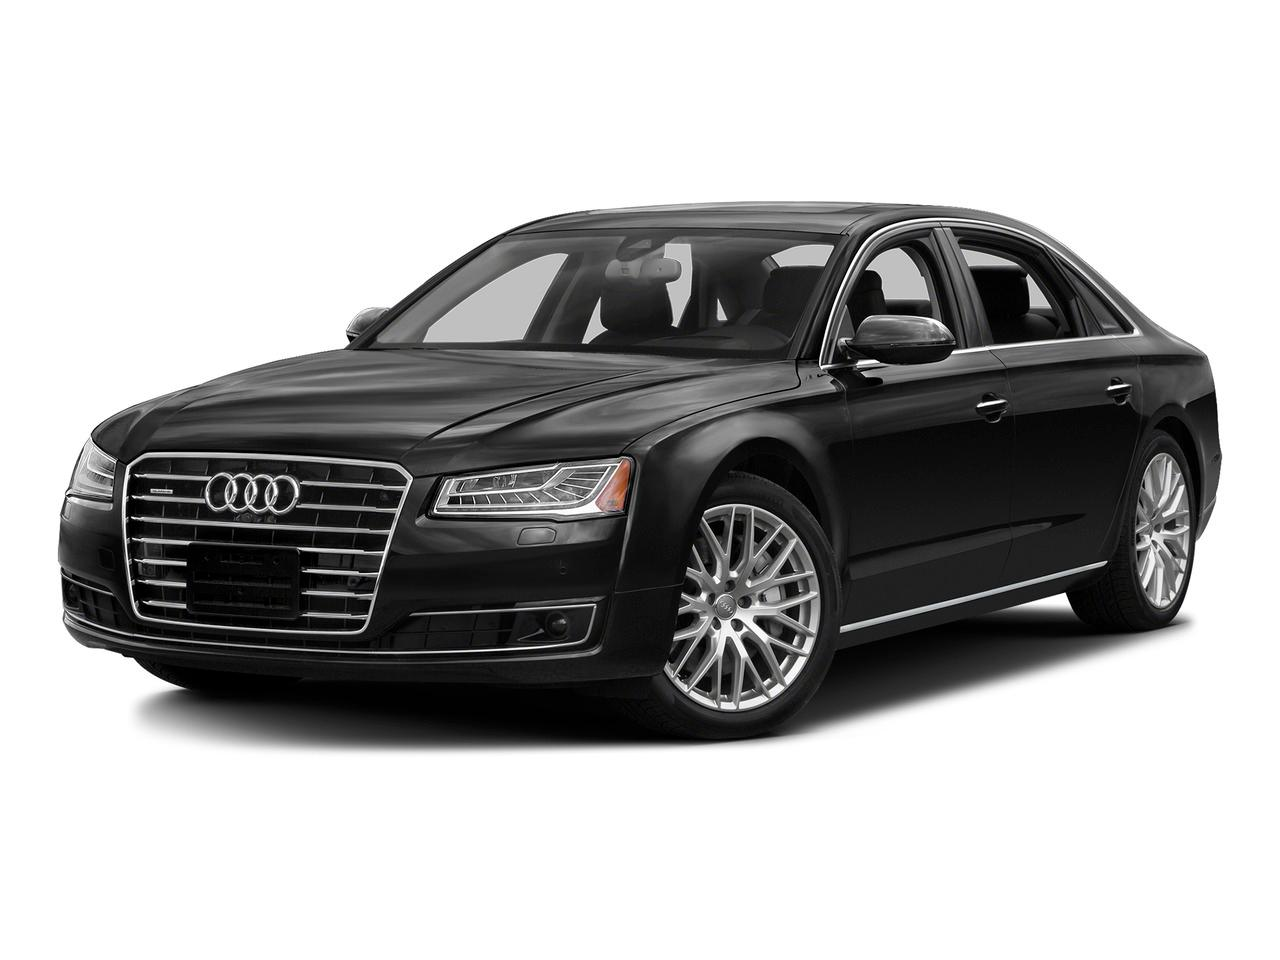 2015 Audi A8 L Vehicle Photo in Fort Worth, TX 76116